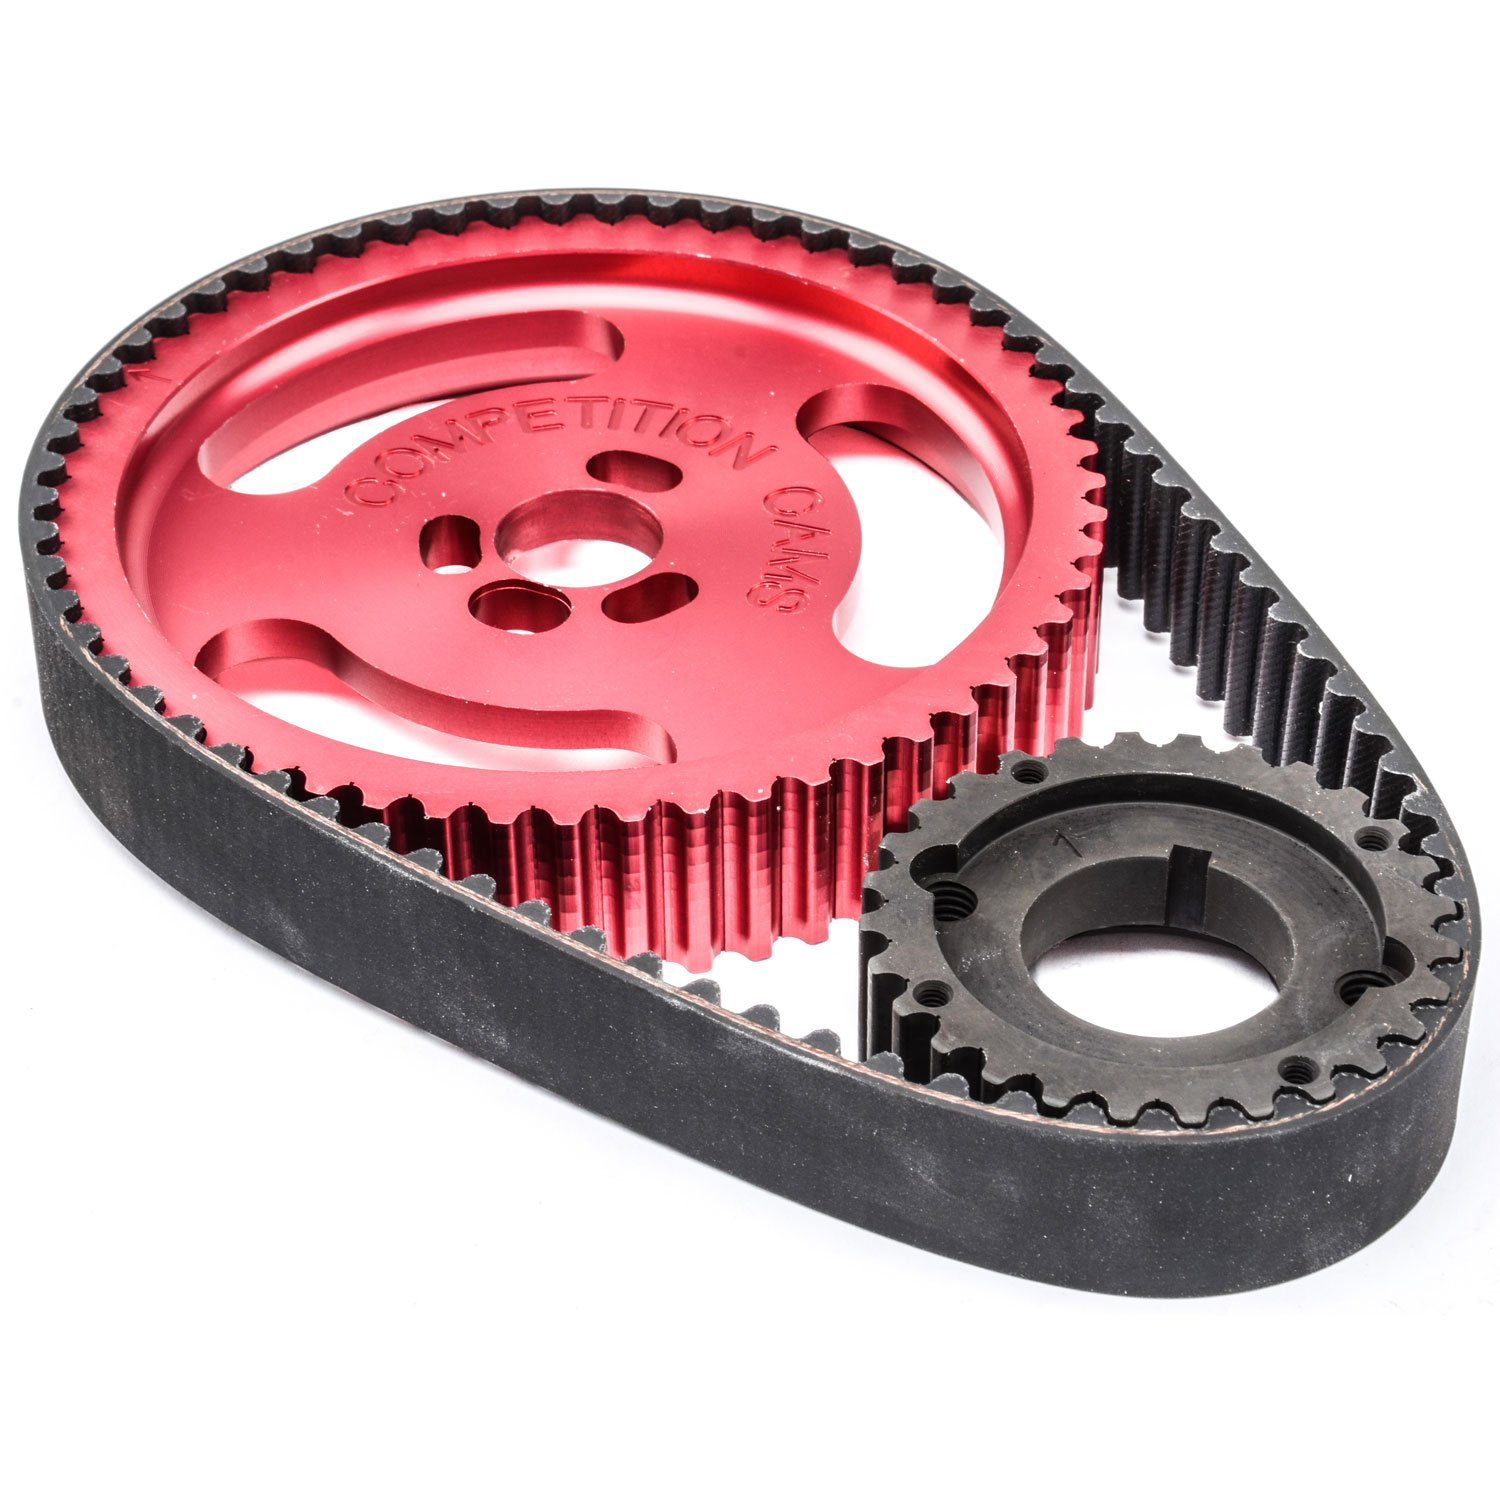 COMP Cams 5100 Wet Belt Drive System for Small Block Chevy by Comp Cams (Image #4)